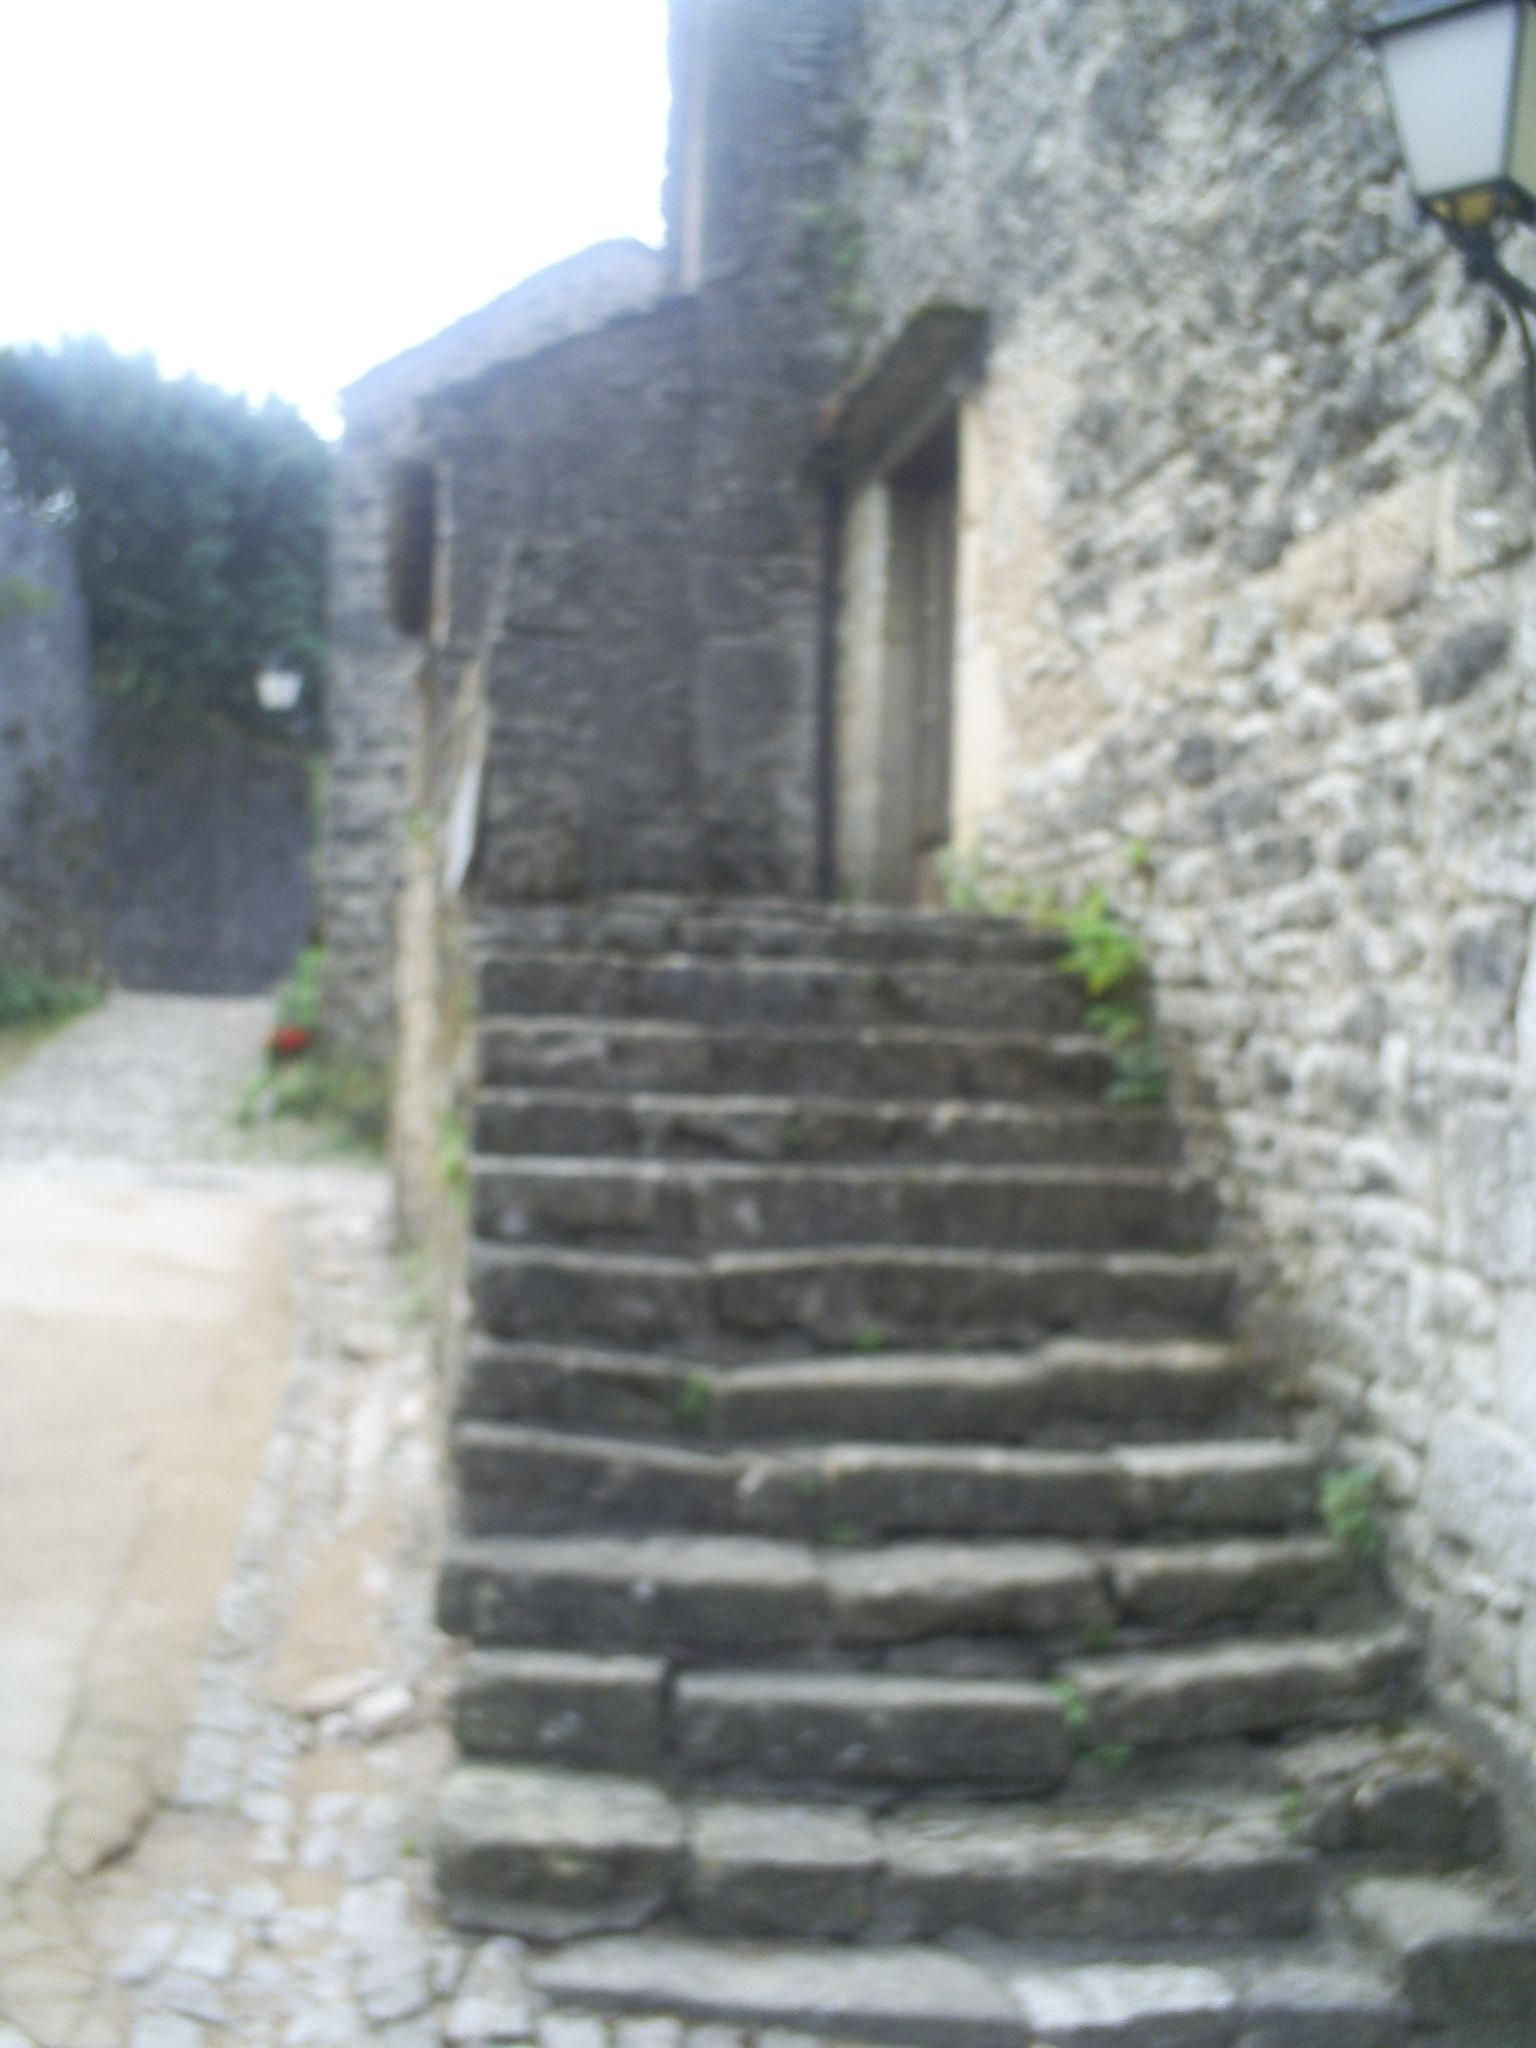 the knights templar fortified village of la couvertoirade on the